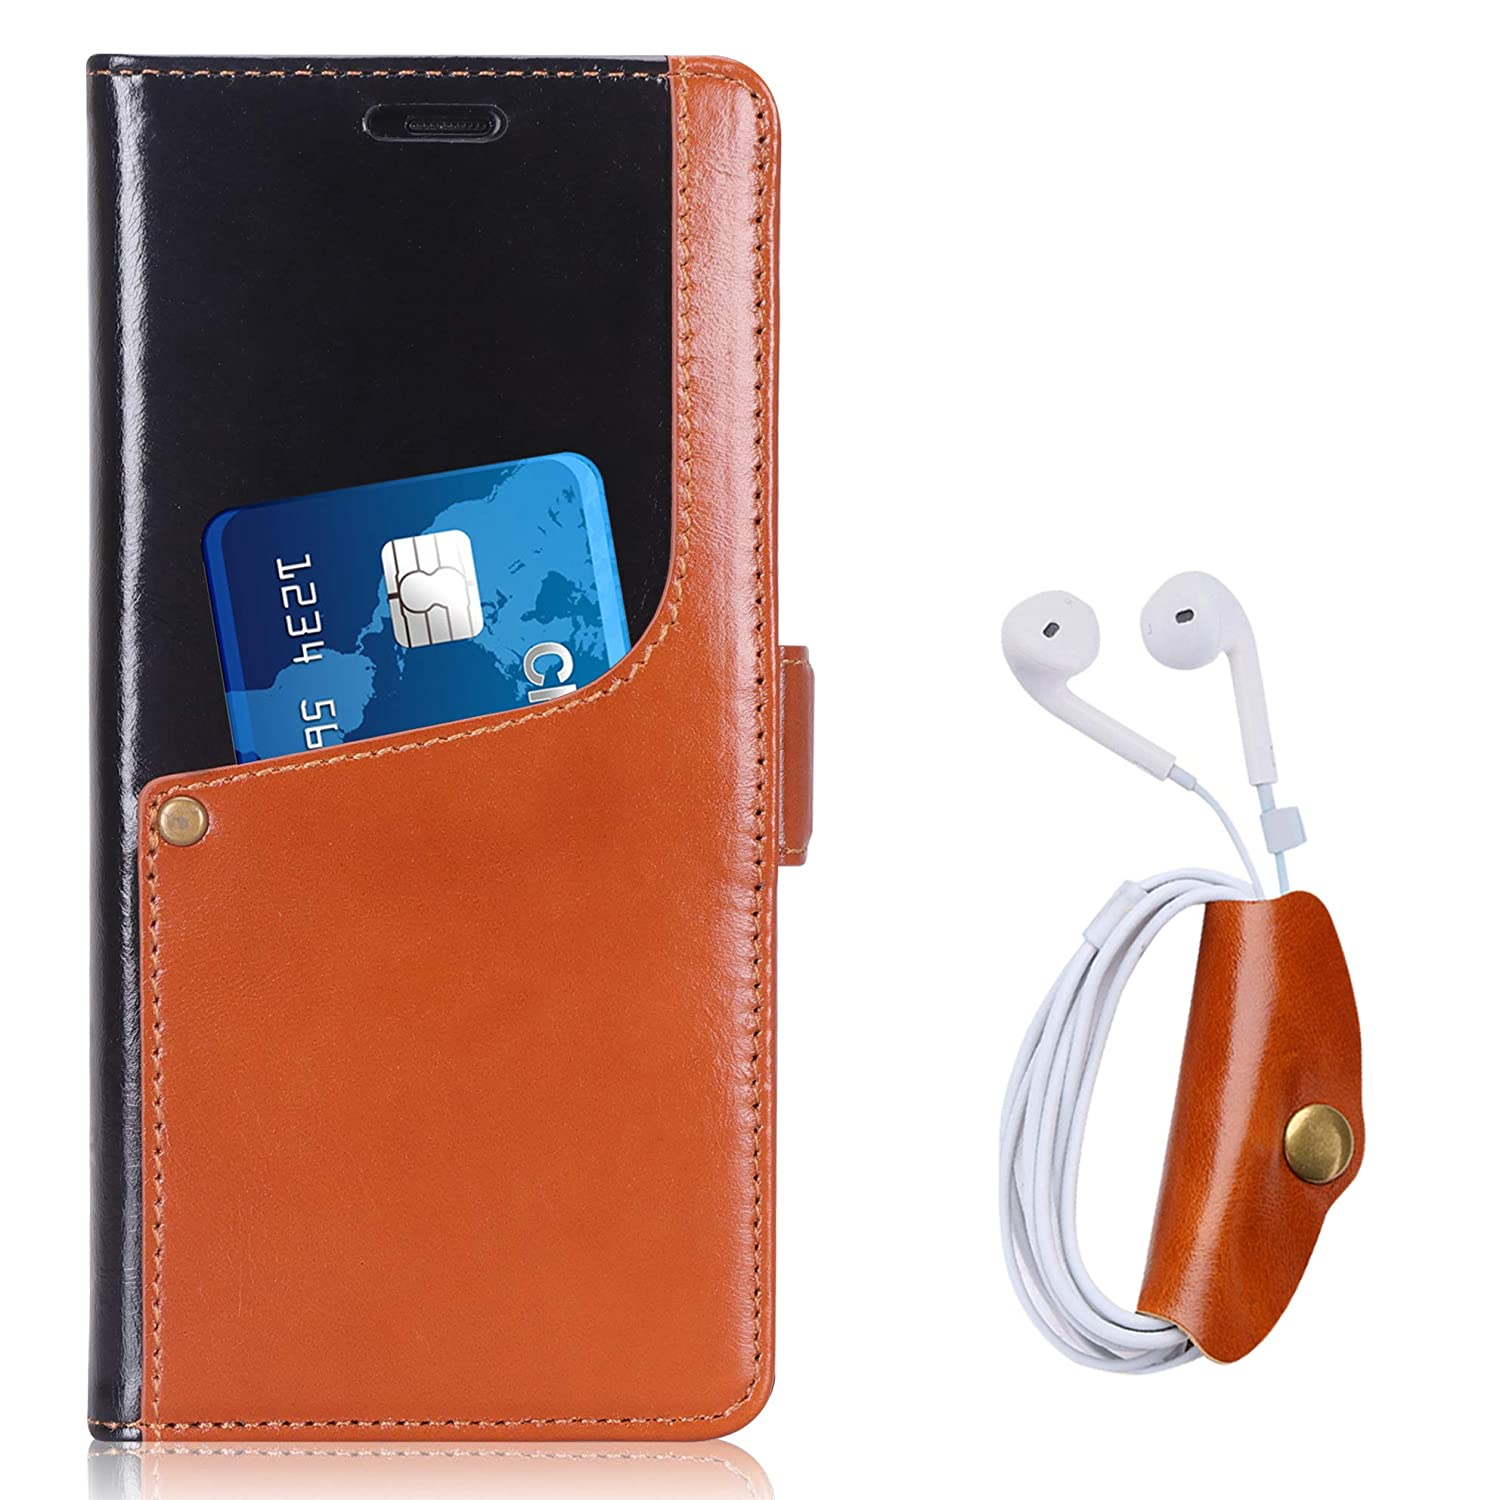 Toplive Note 9 Case, Luxurious Genuine Cowhide Leather Wallet Case with Earbud Holder for Samsung Galaxy Note 9 2018, Brown Guangzhou Zhao Qian Sun Li Intel-tech. Co. Ltd.